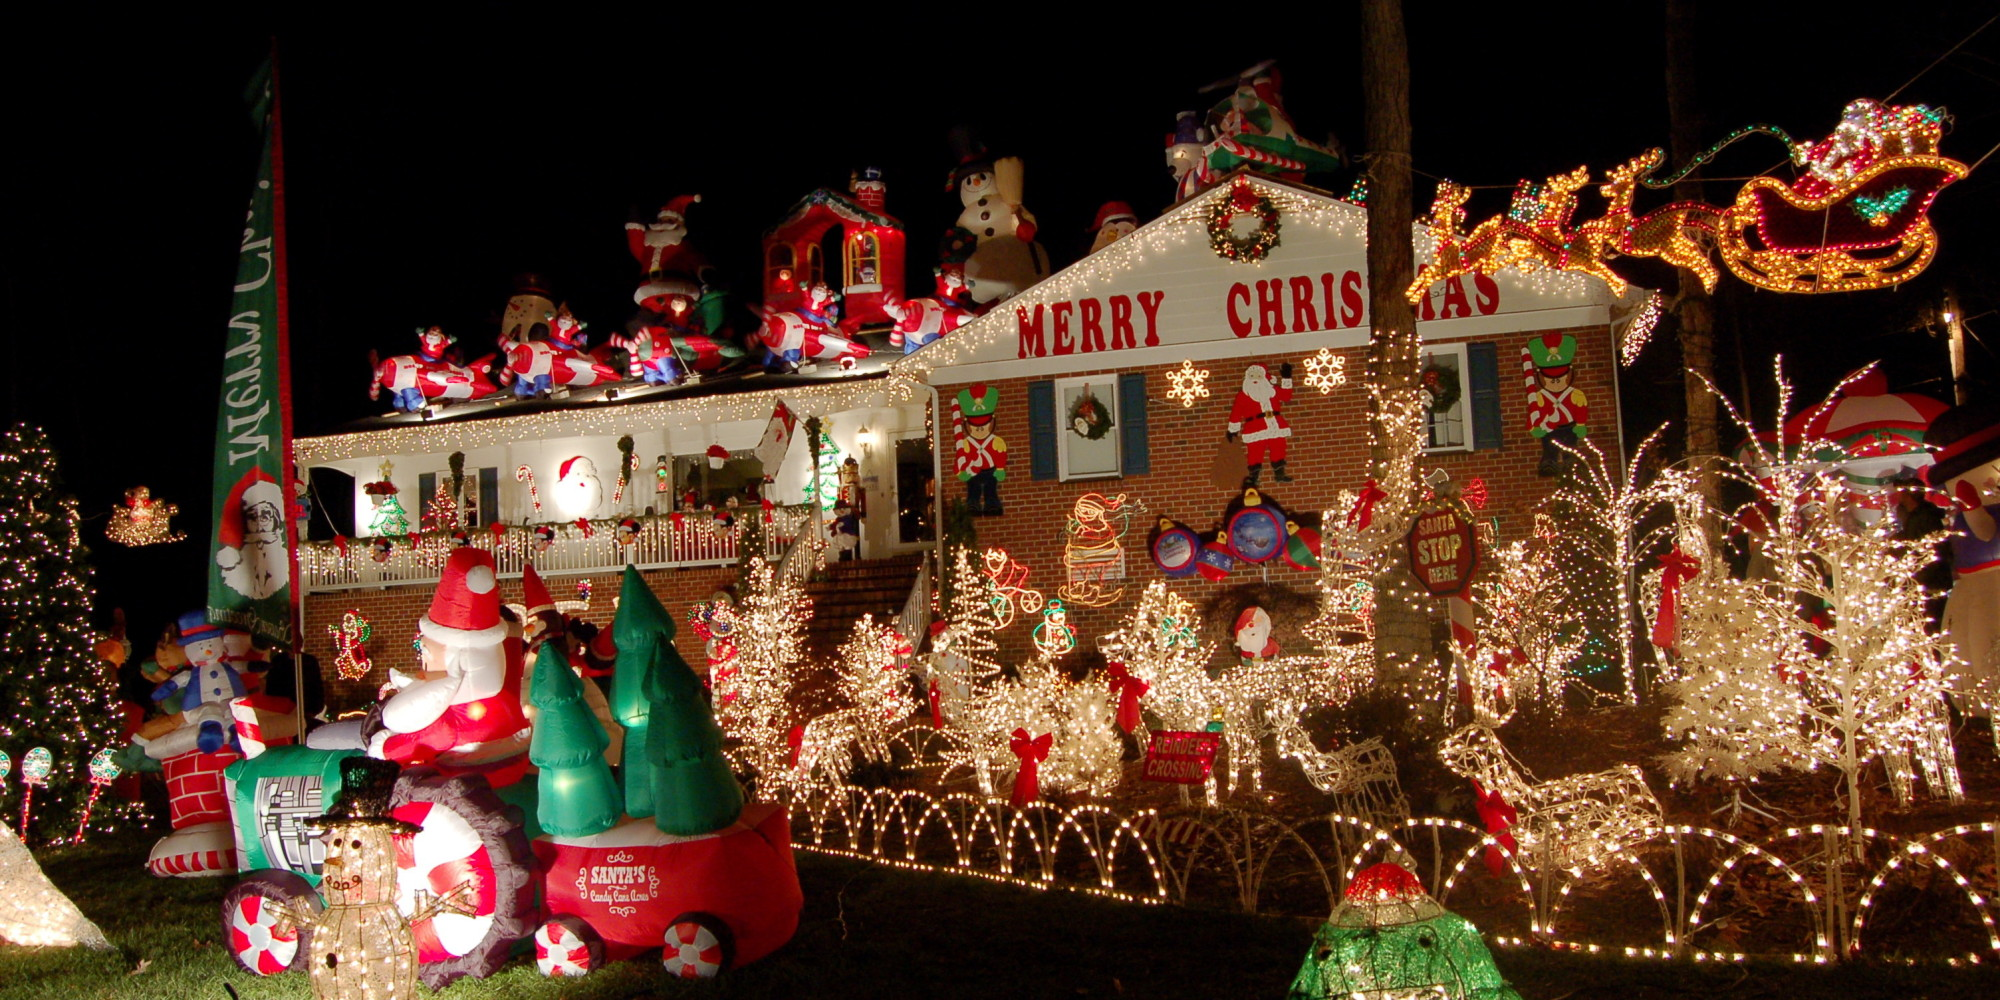 15 incredible houses decorated for christmas whoville decorated christmas house pictures photos and images for